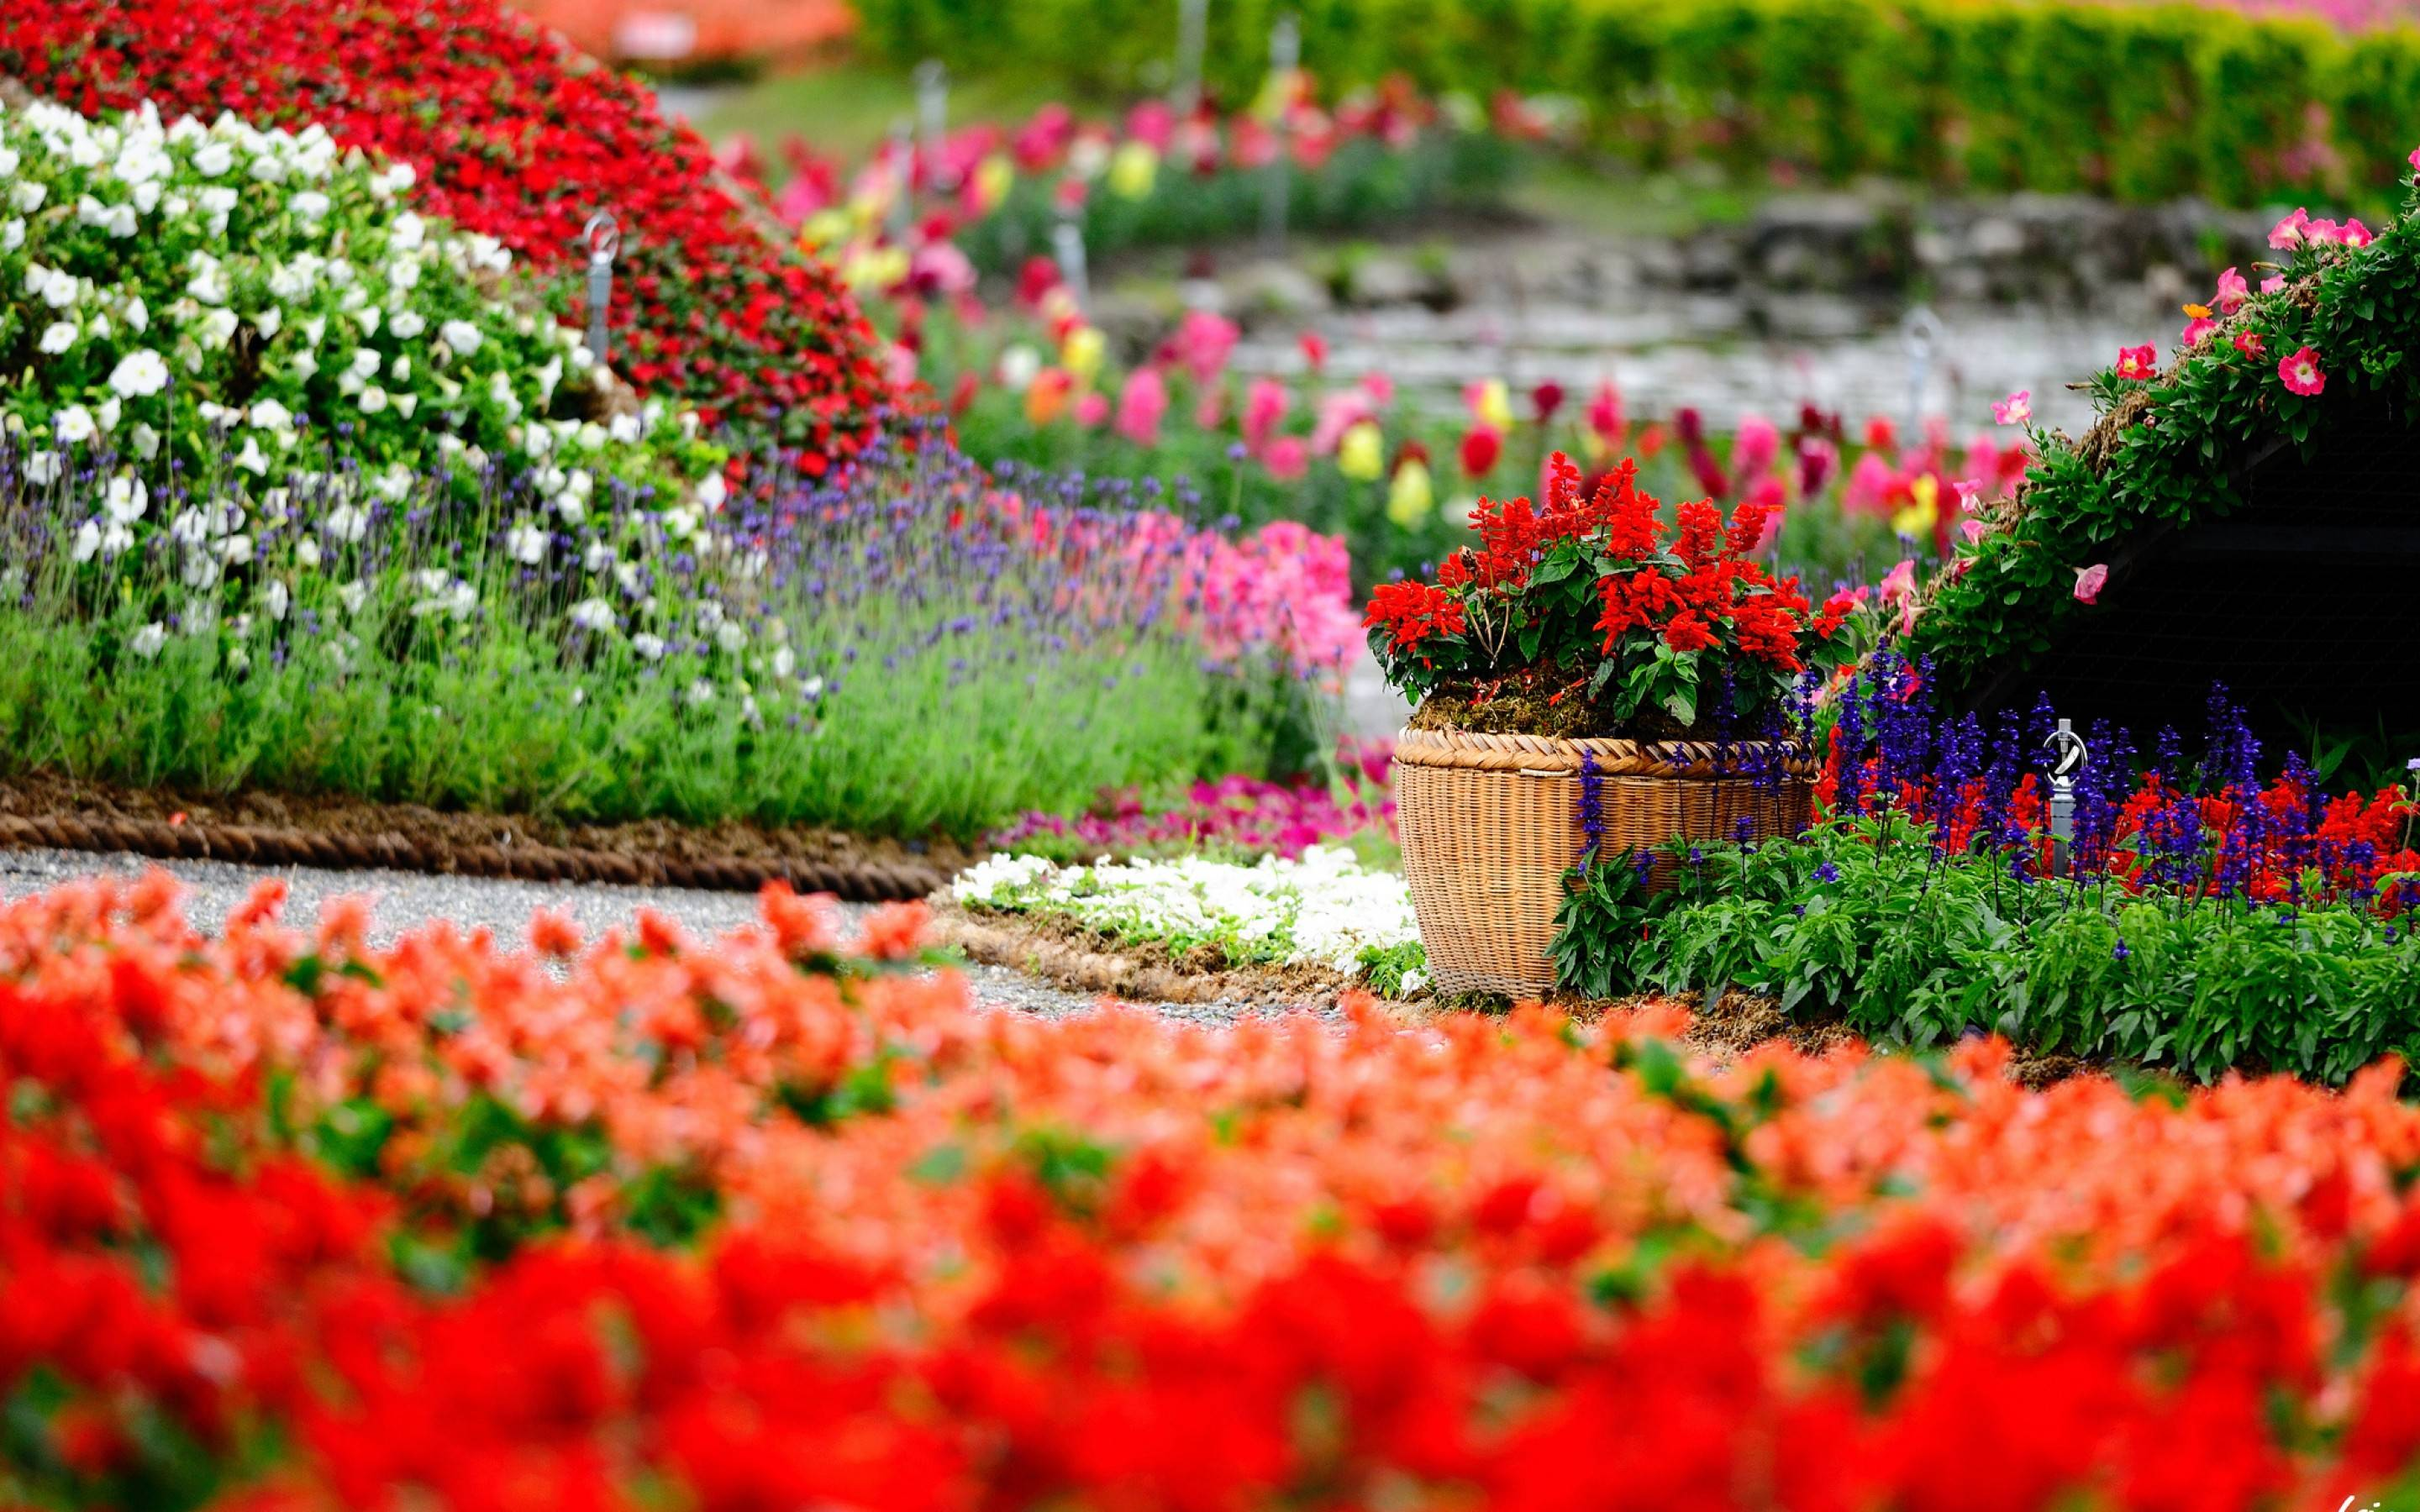 Flower Garden Wallpapers Top Free Flower Garden Backgrounds Wallpaperaccess